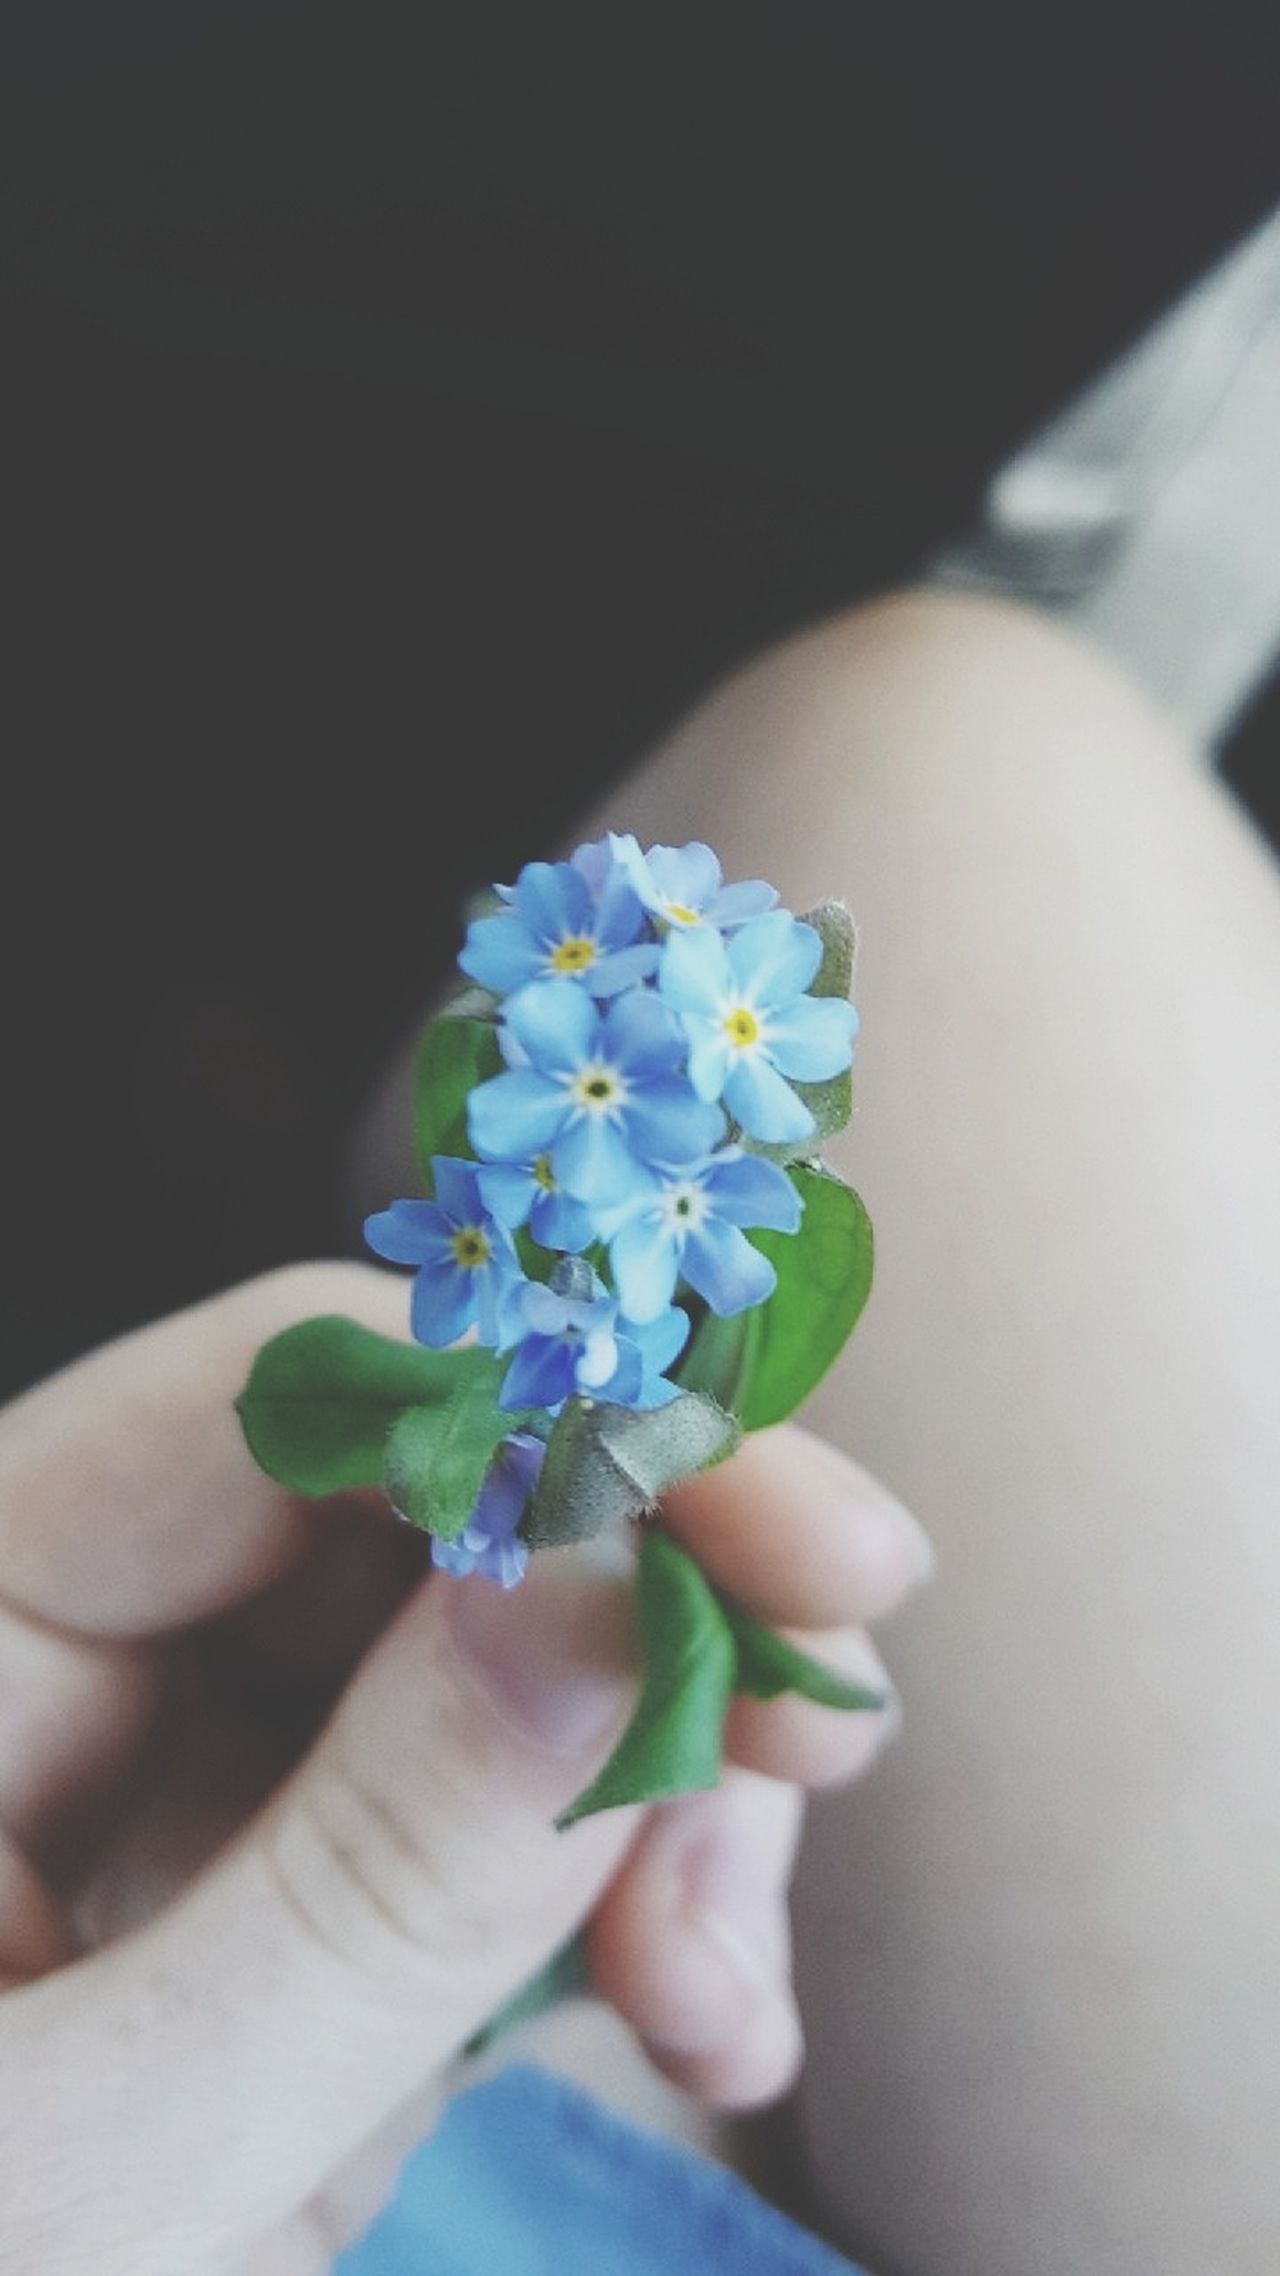 Human Hand Human Body Part Holding Flower Hand Flower Head Day Freshness Nature Blue Blue Flowers Blue Flower Simple Nature Country Life! Simple Moments Simple Pleasures Simple Things Simple Photography